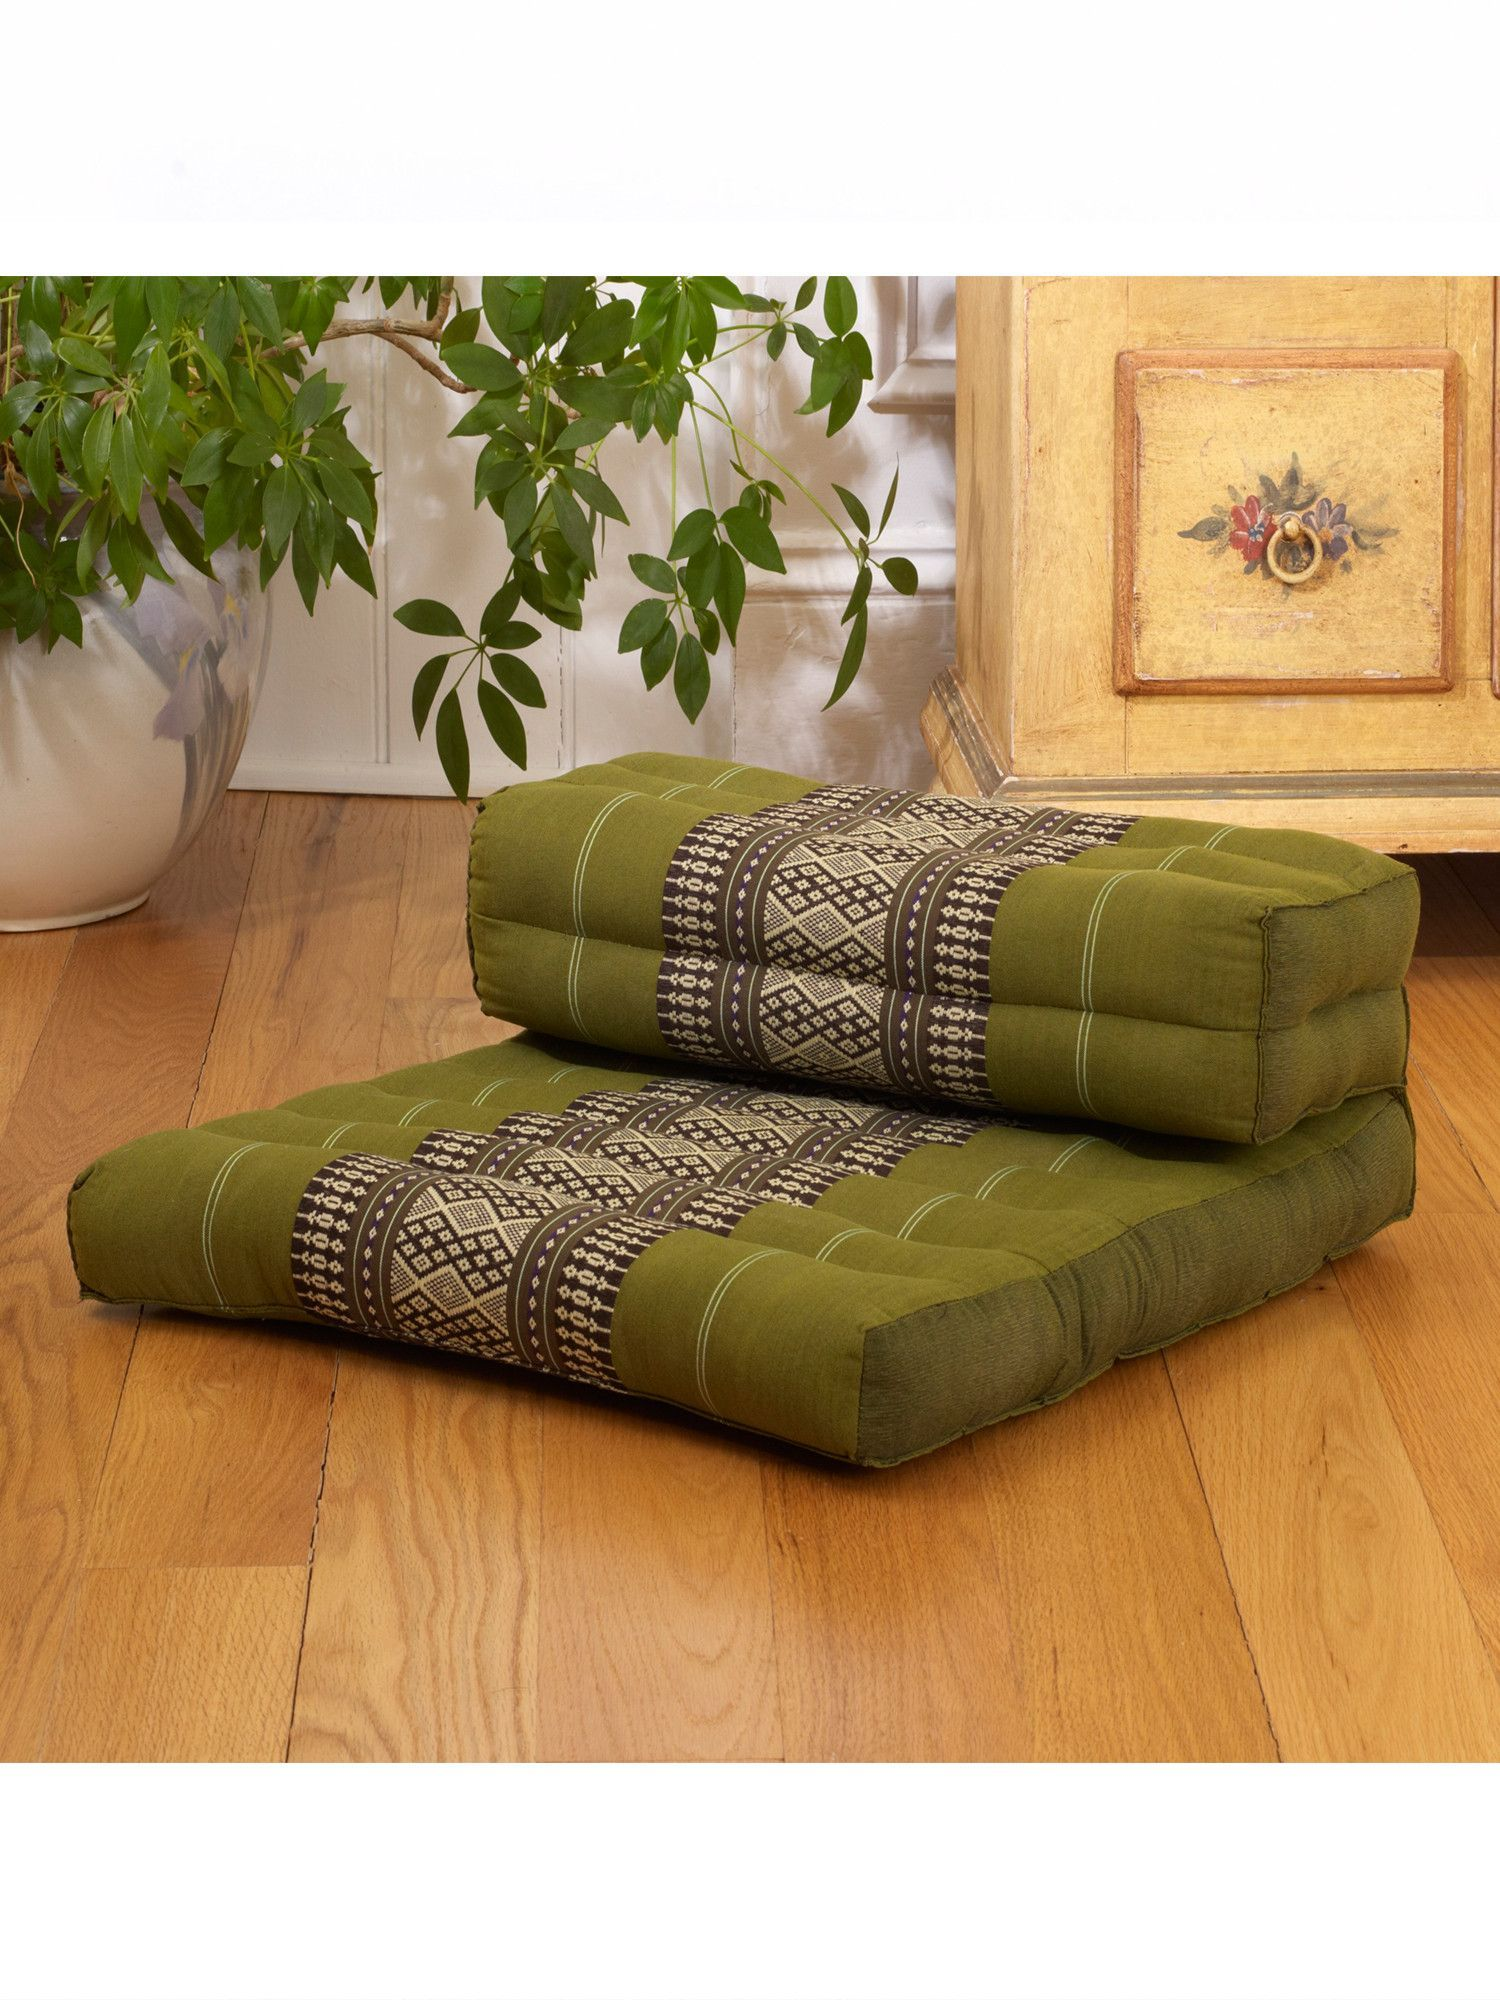 Dhyana meditation cushion cool pinterest meditation rooms